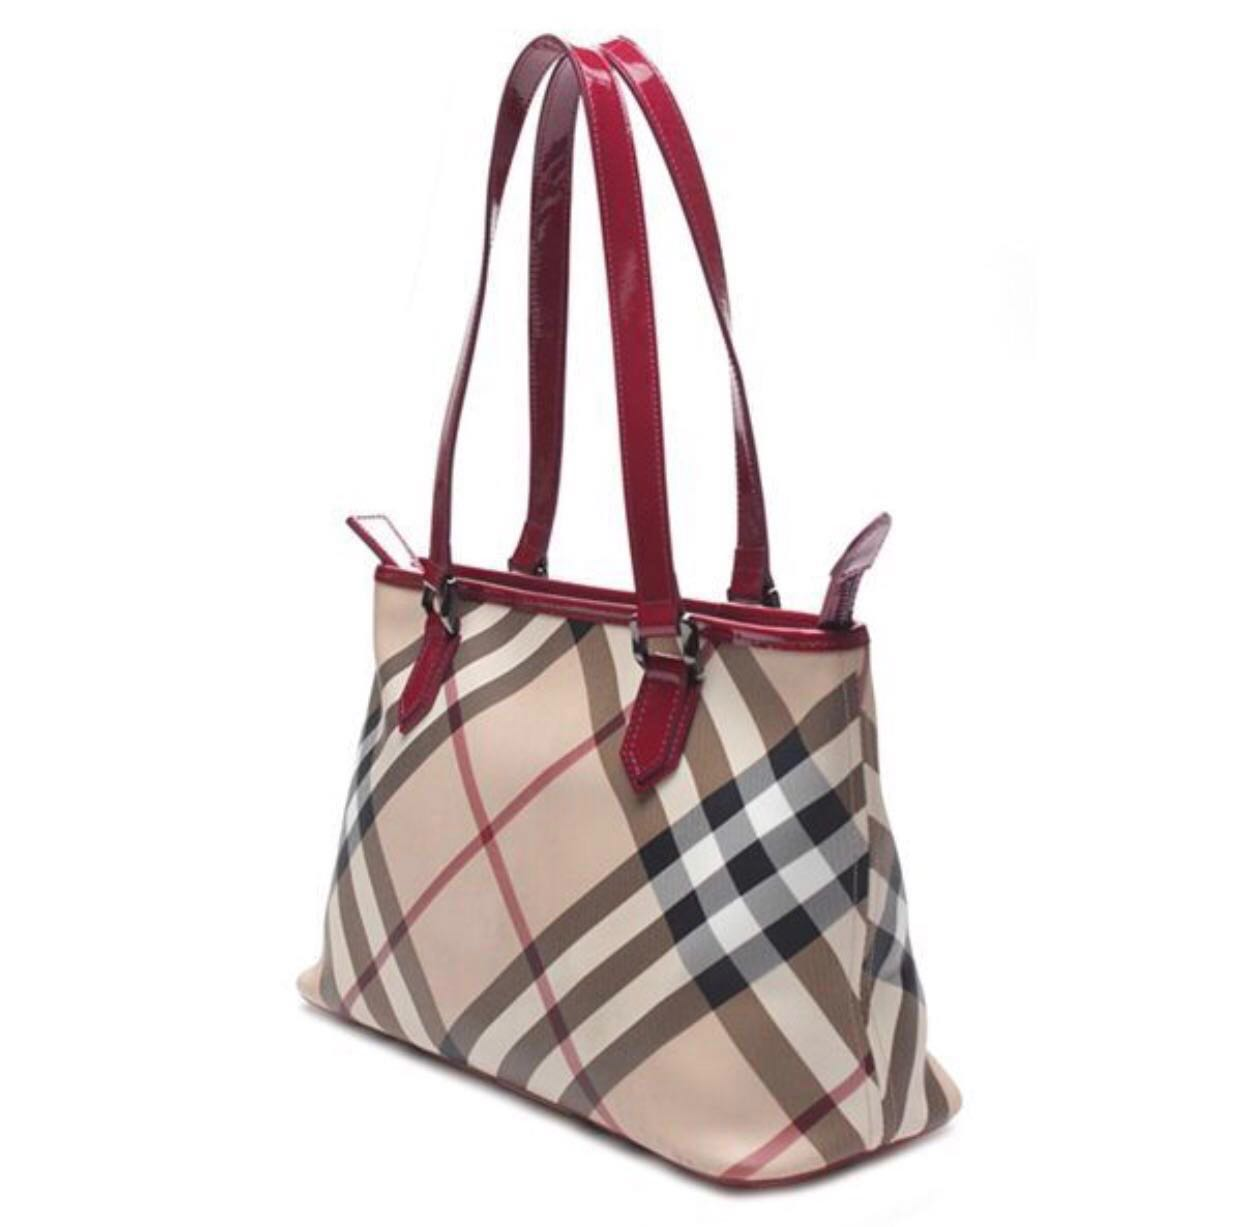 5a512b08eefb Burberry Nova Check Coated Canvas Regent Tote Bag